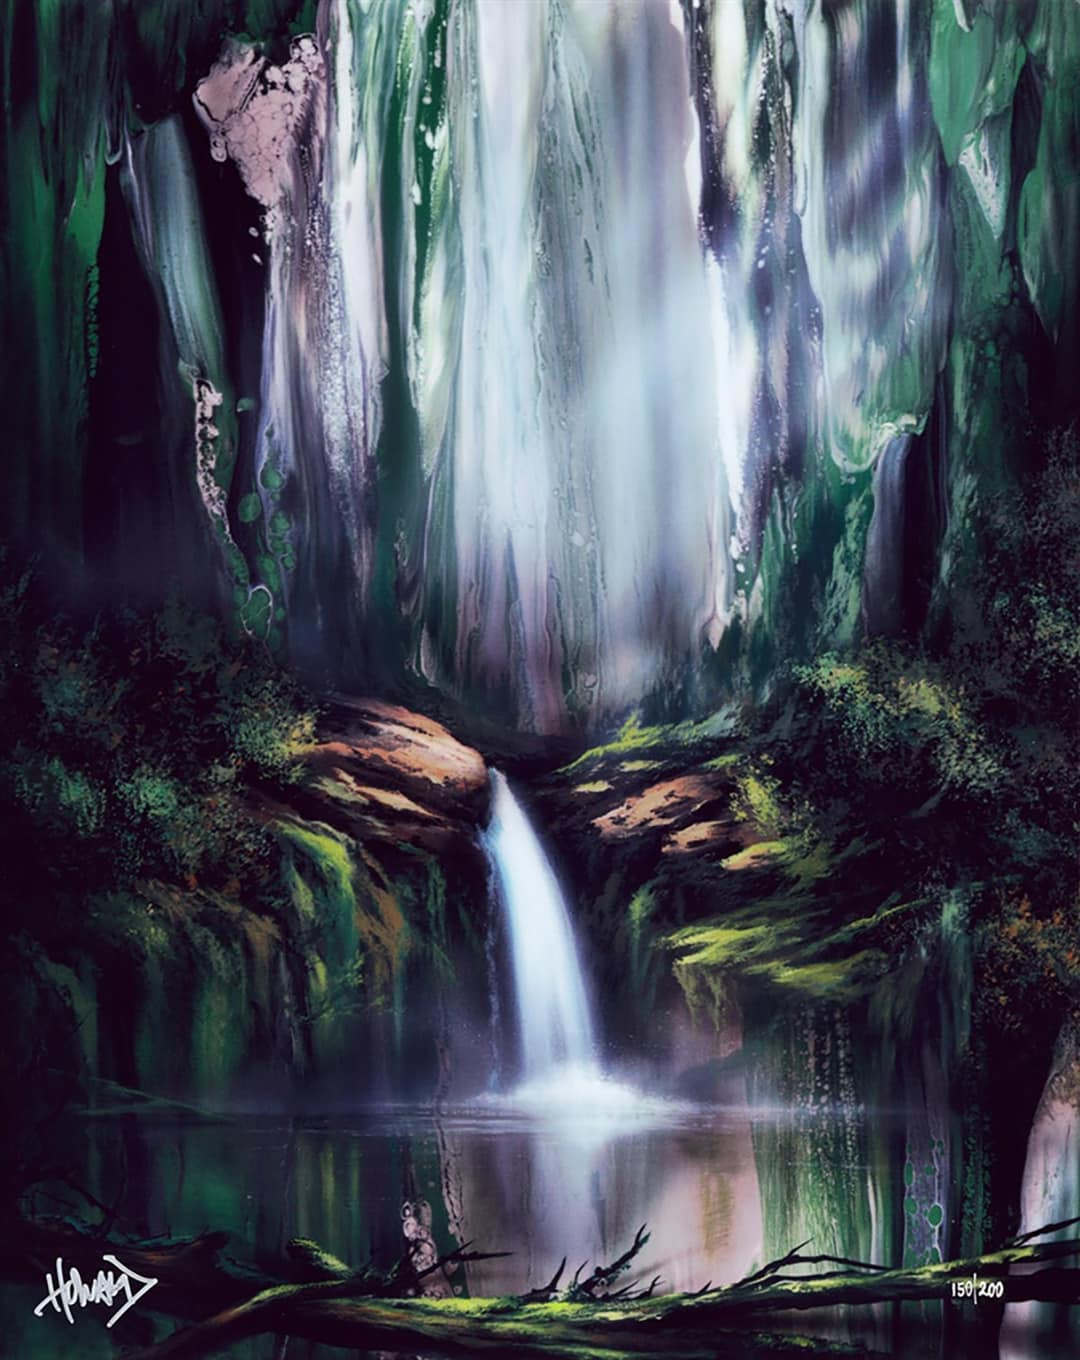 Ashton Howard painting of a waterfall in a forest